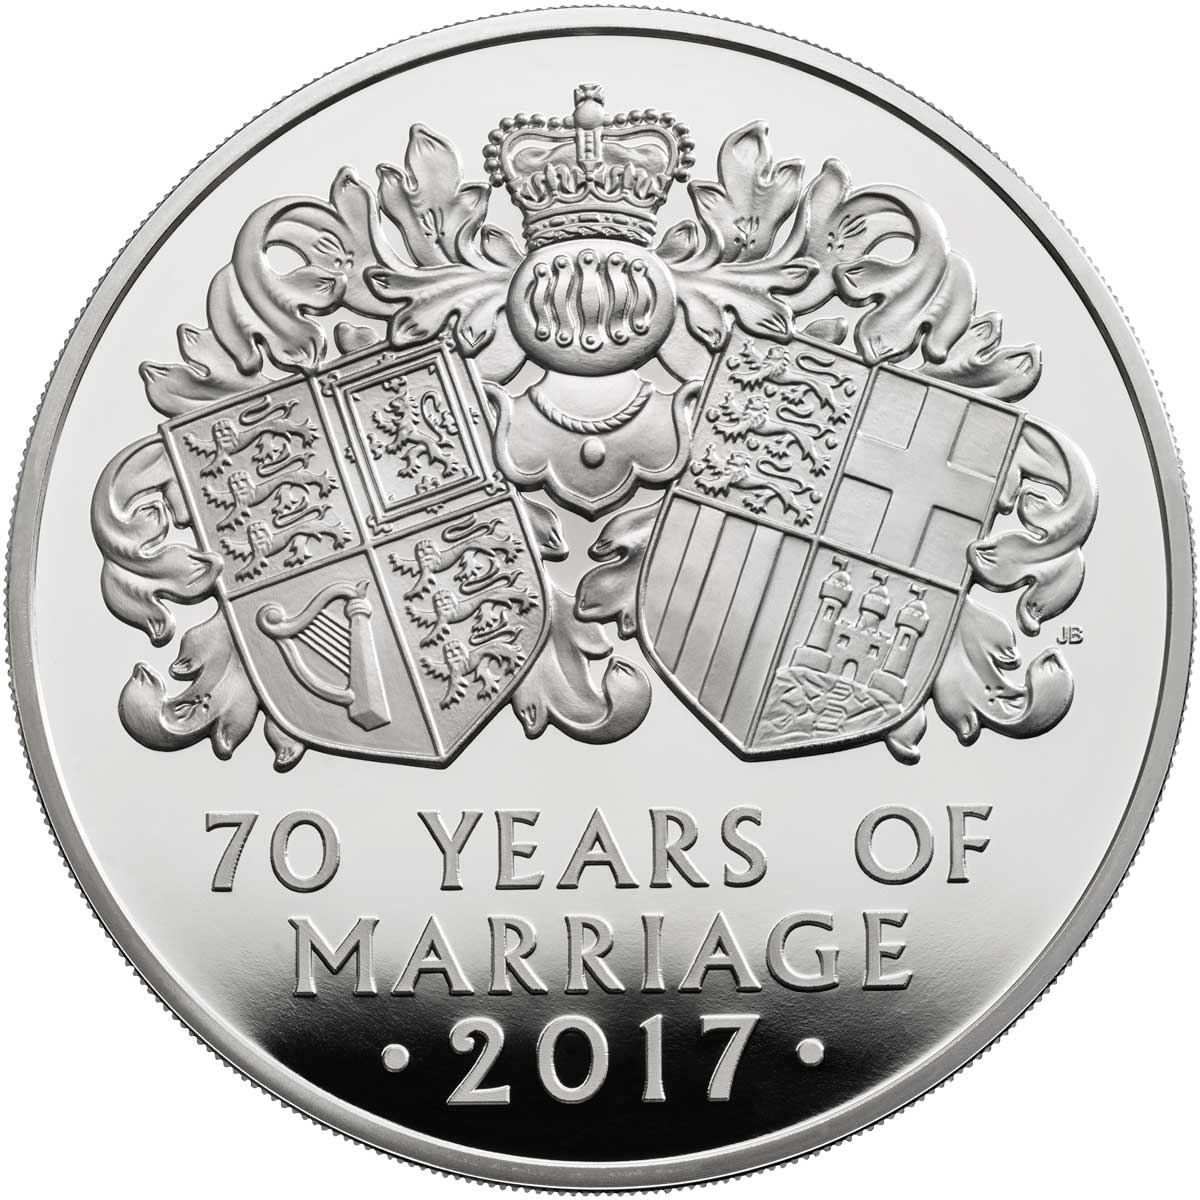 PLATINUM WEDDING 2017 UNITED KINGDOM 5OZ PROOF SILVER